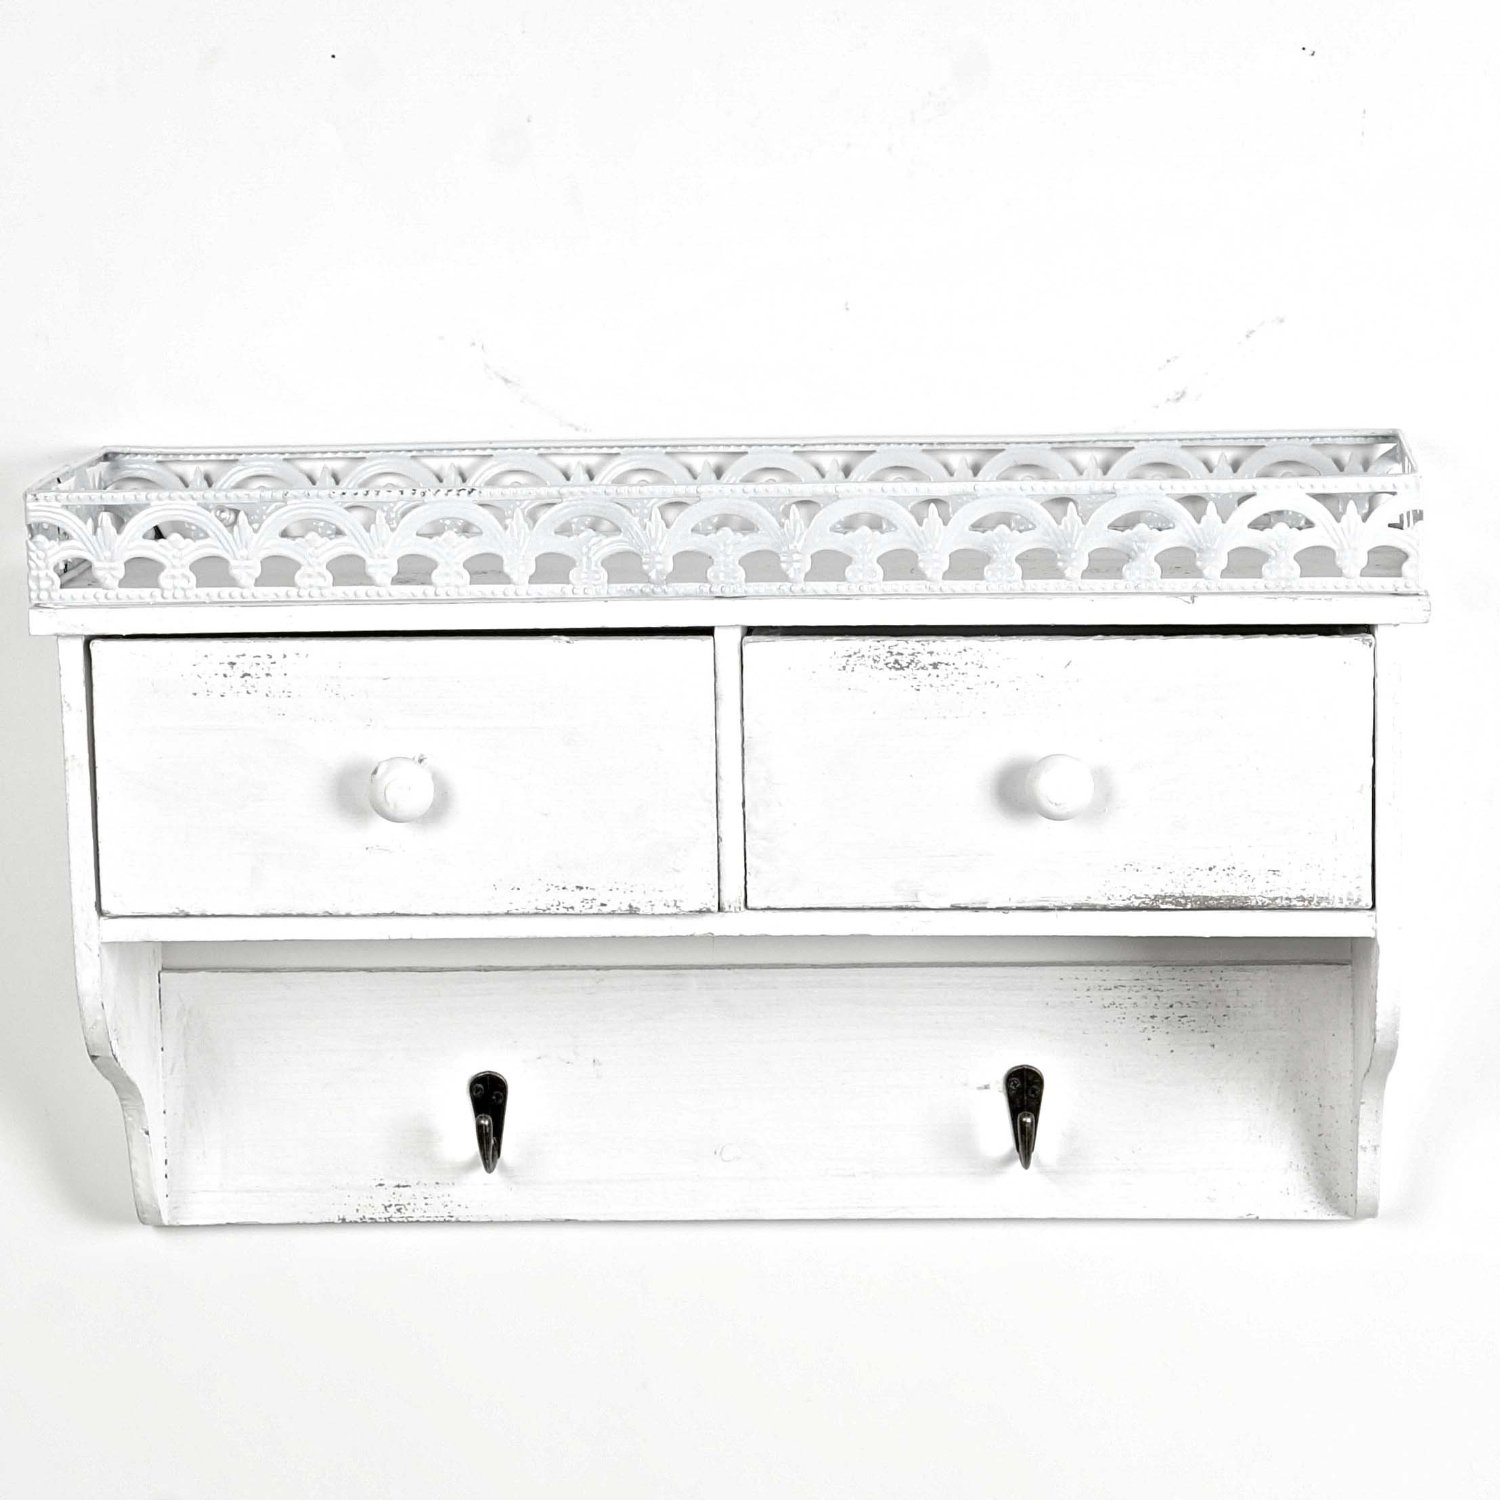 Antique Style Wooden Shelf with Metal Decorative Edge -- Drawers and Hooks -- Washed White